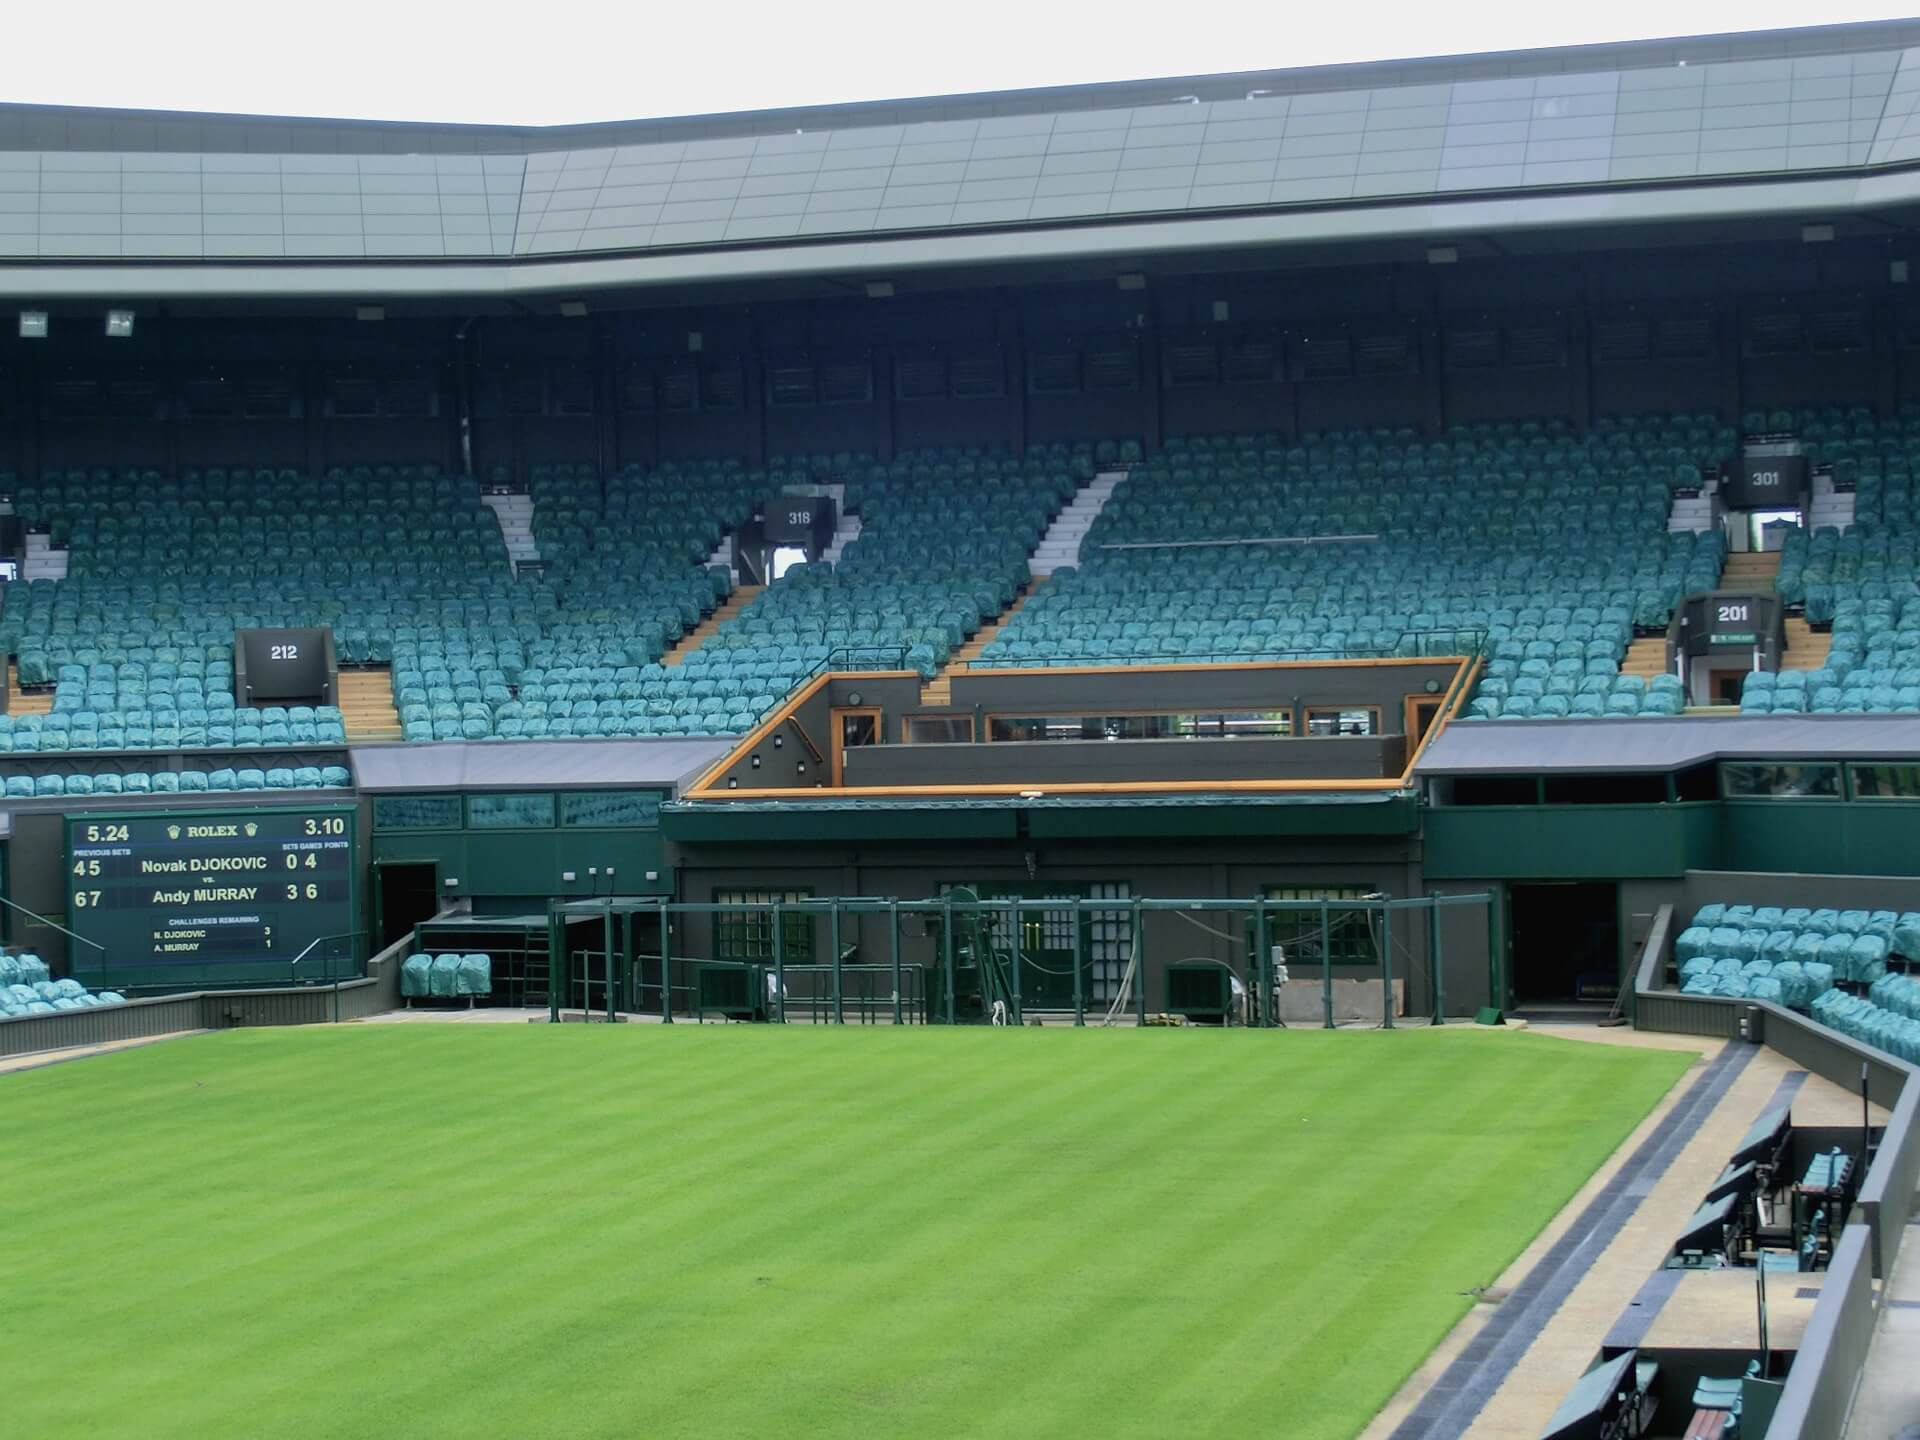 Wimbledon Stadium Tour - Stadium Tours in London